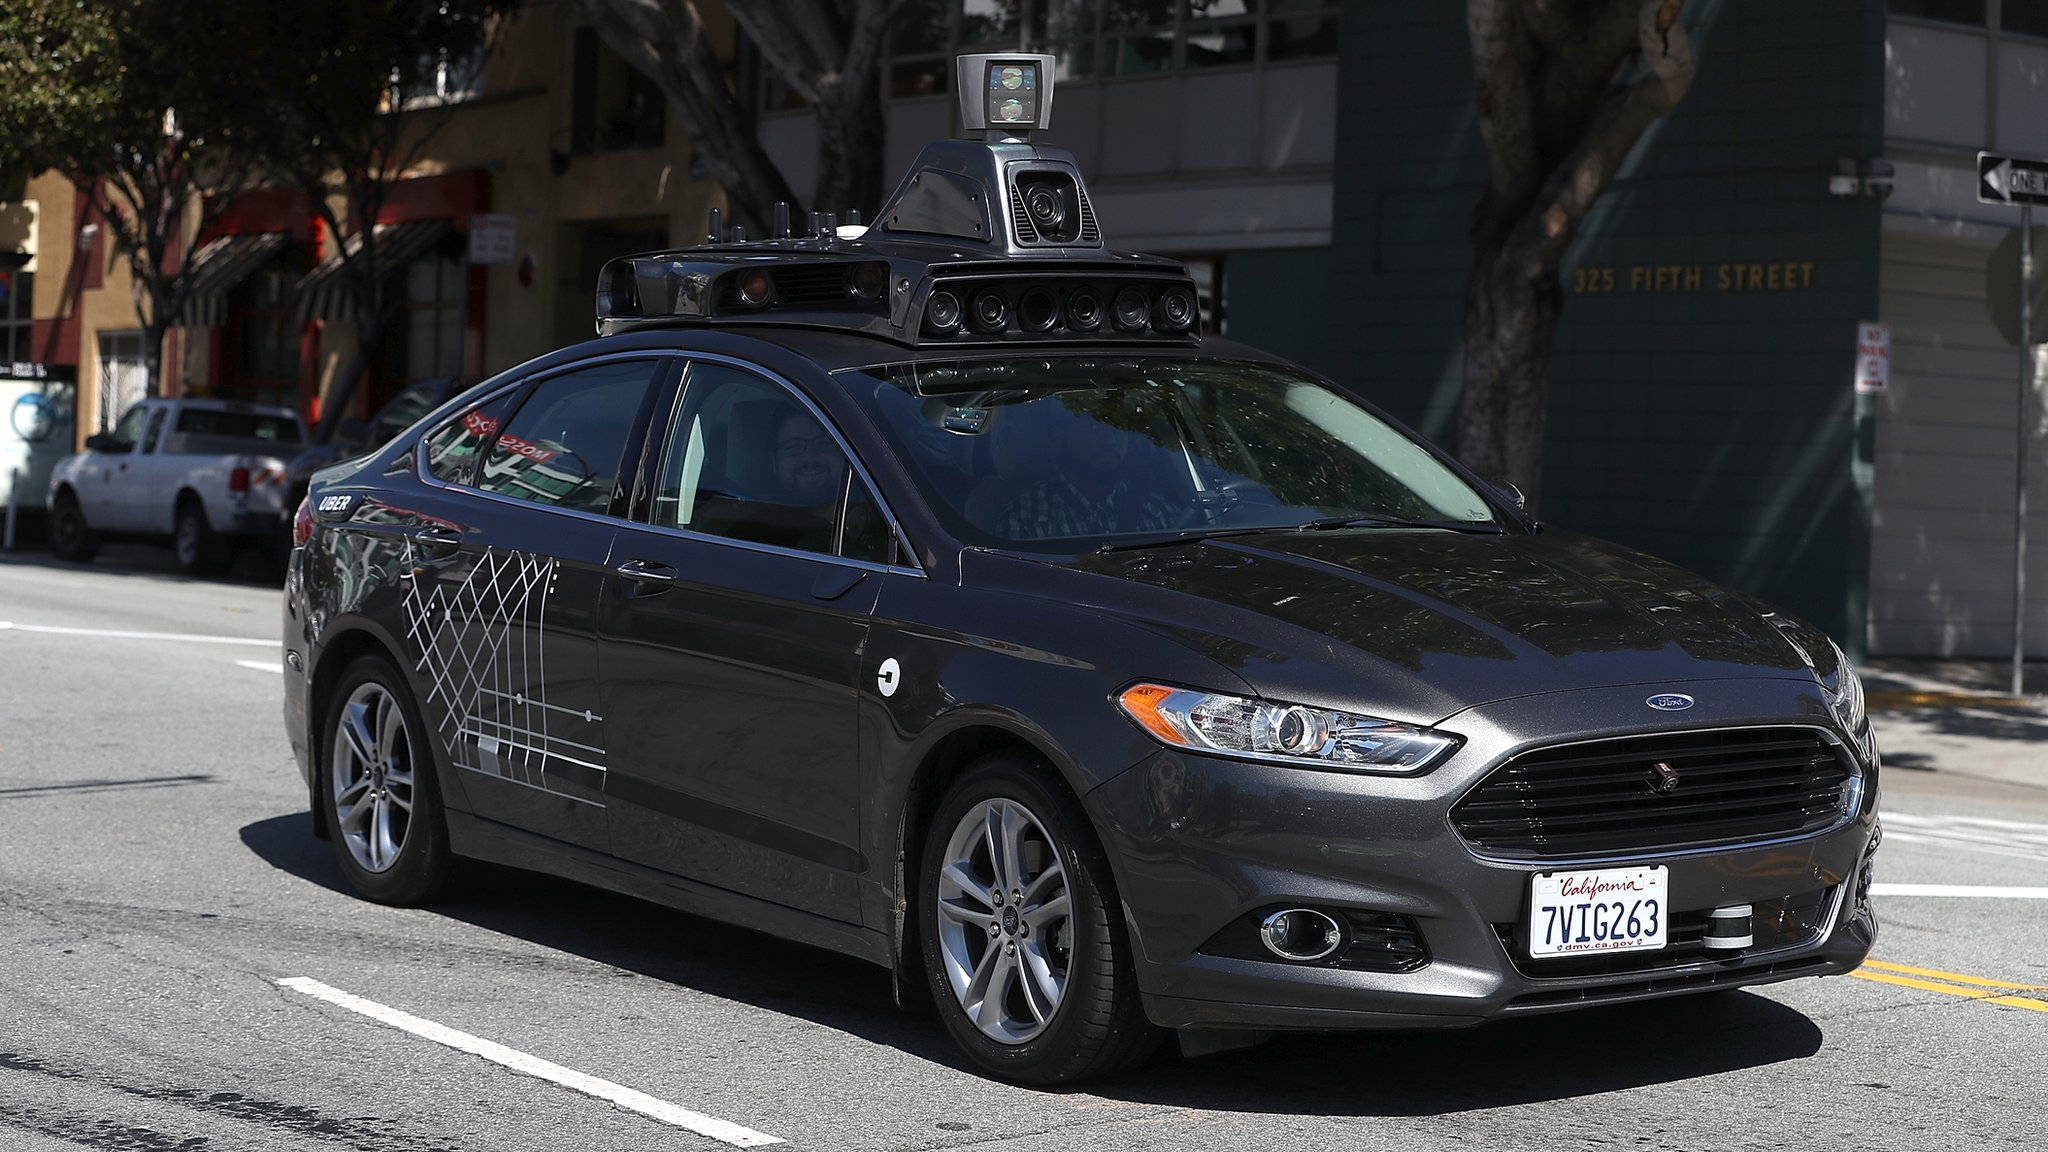 Uber halts self-driving car tests after death